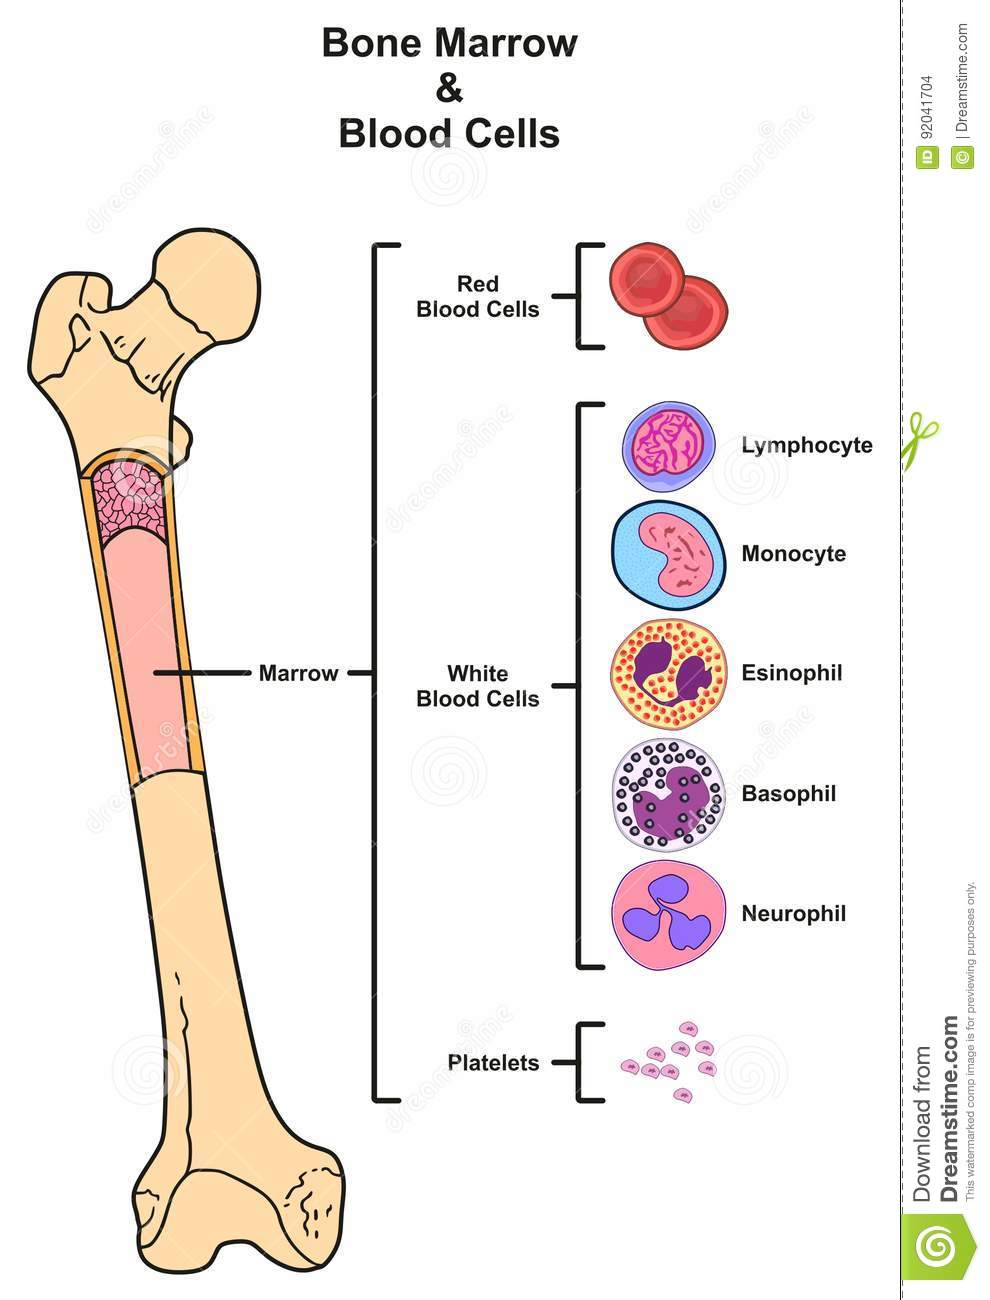 bone marrow & blood cells infographic diagram including femur reproduction  of red white blood cells platelets lymphocyte monocyte esinophill basophill